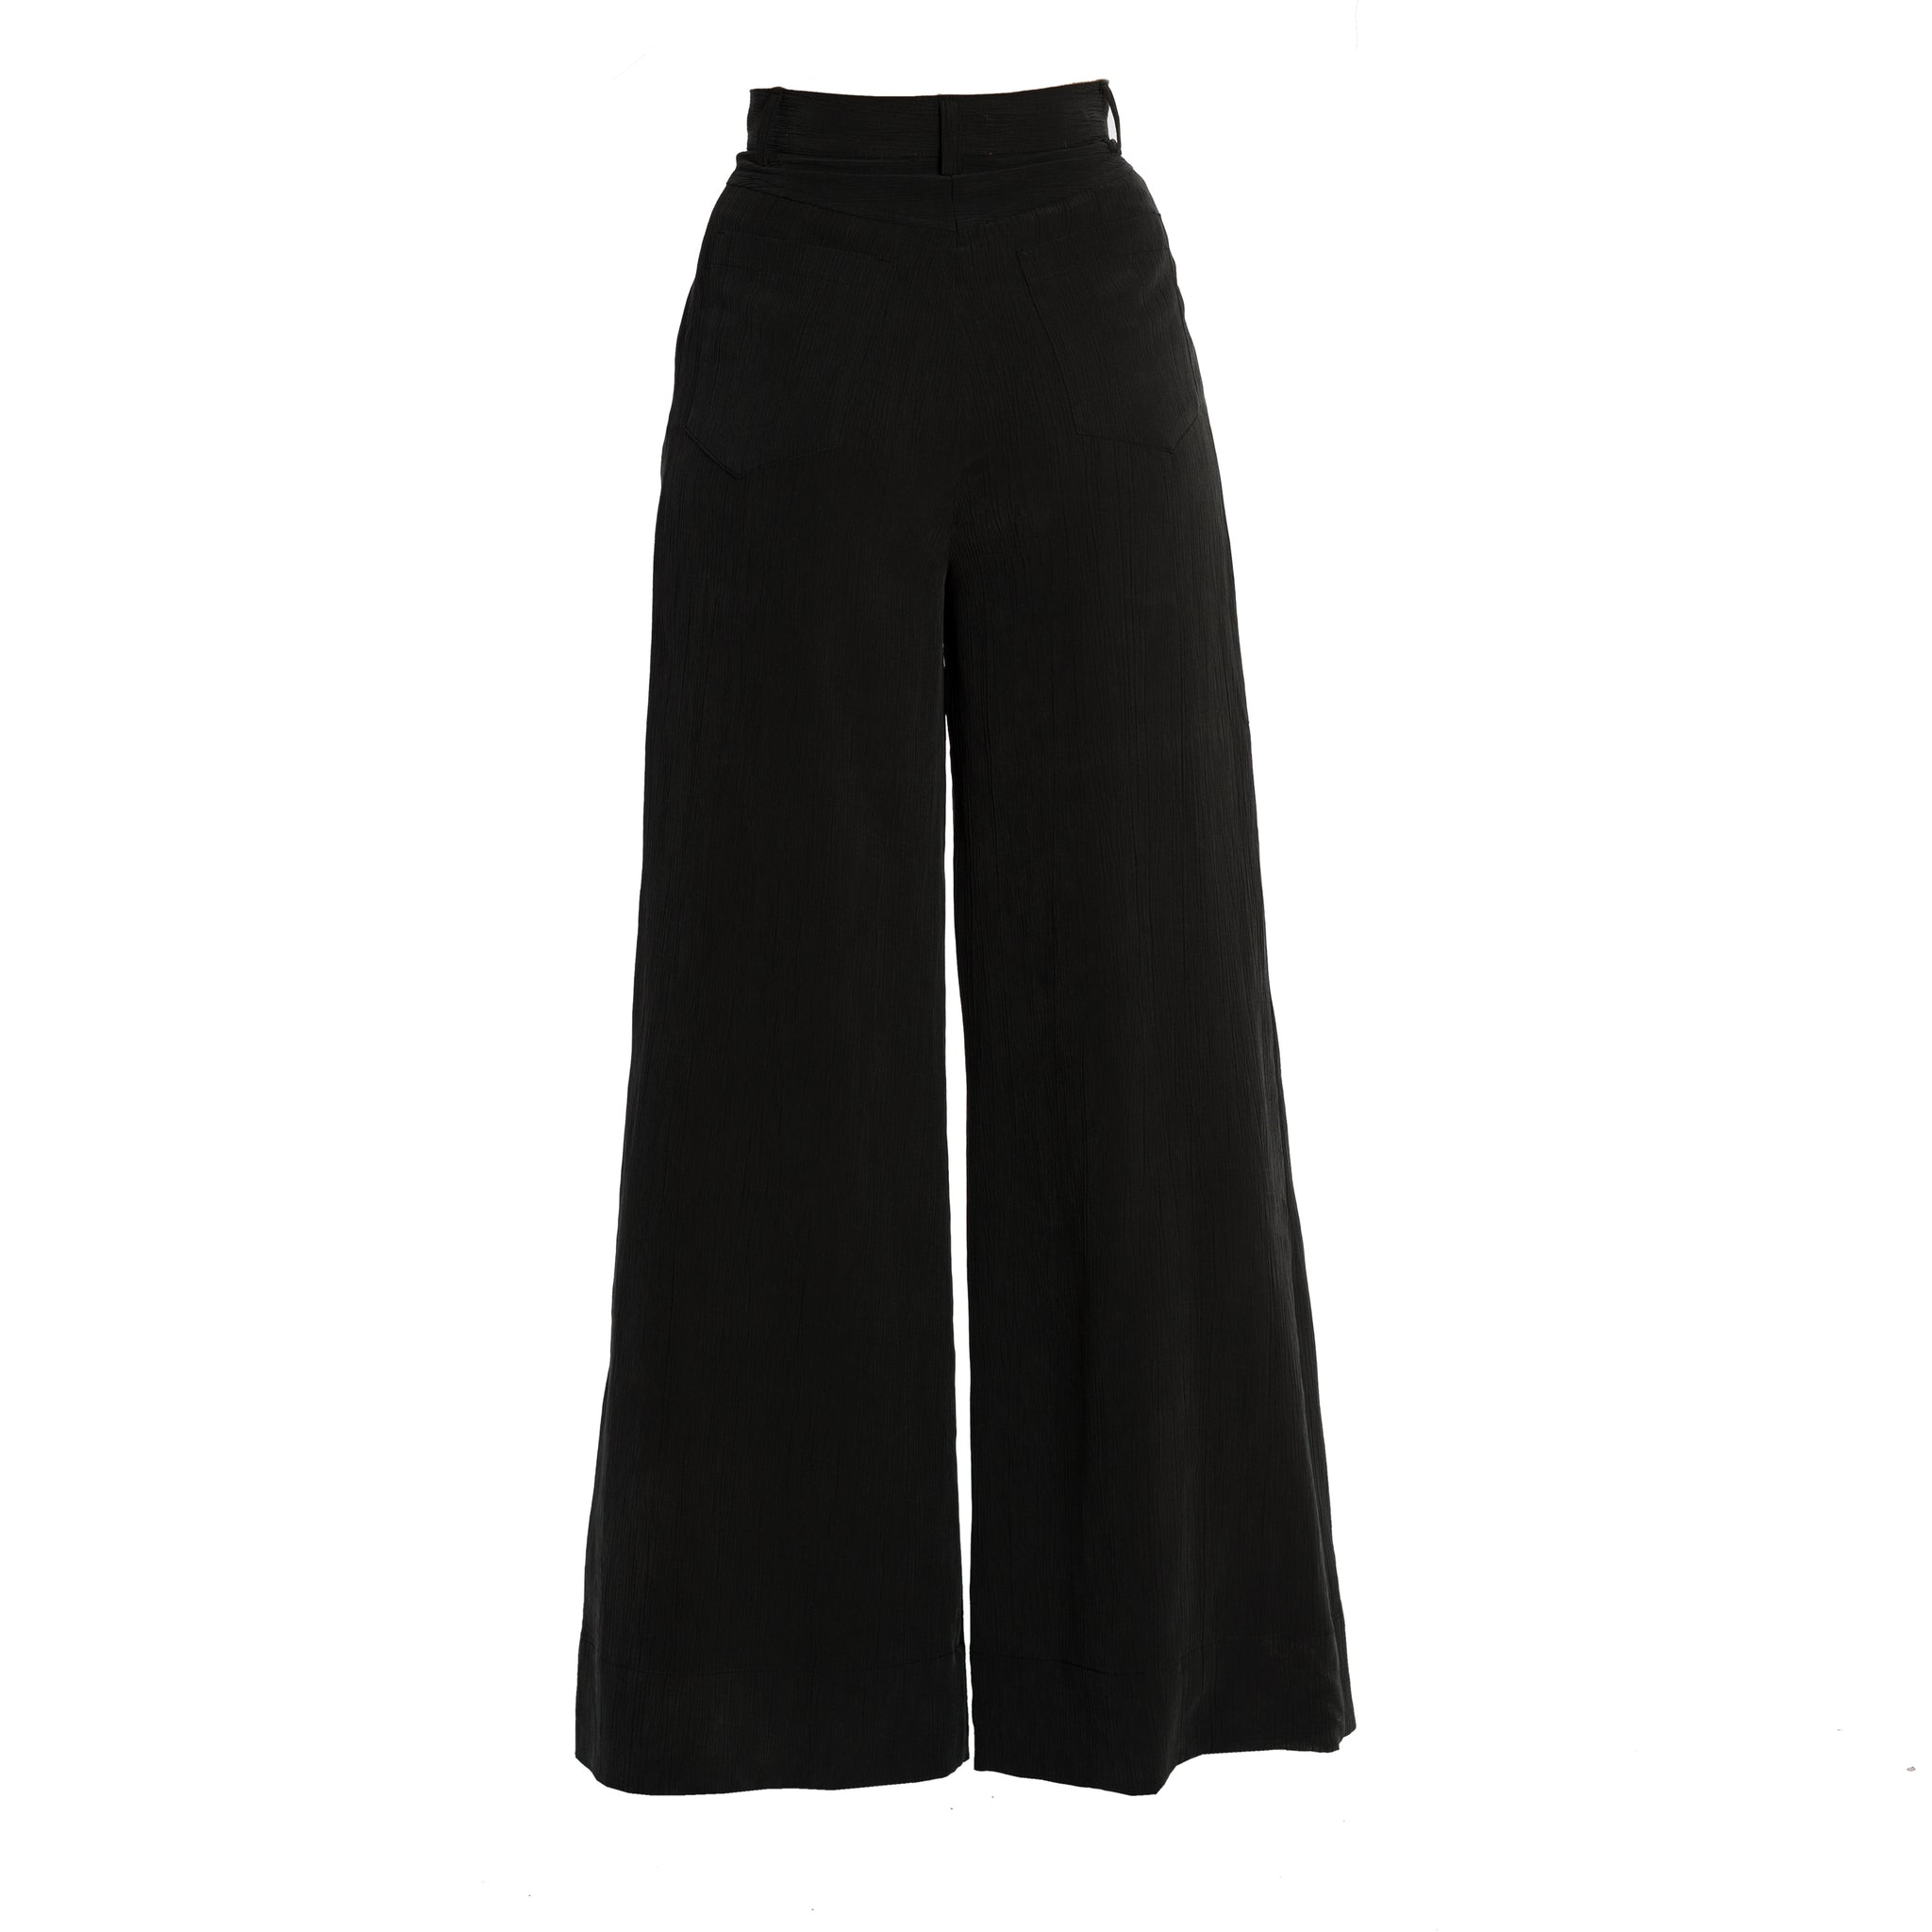 IPARTERV Charcoal Palazzo Trousers